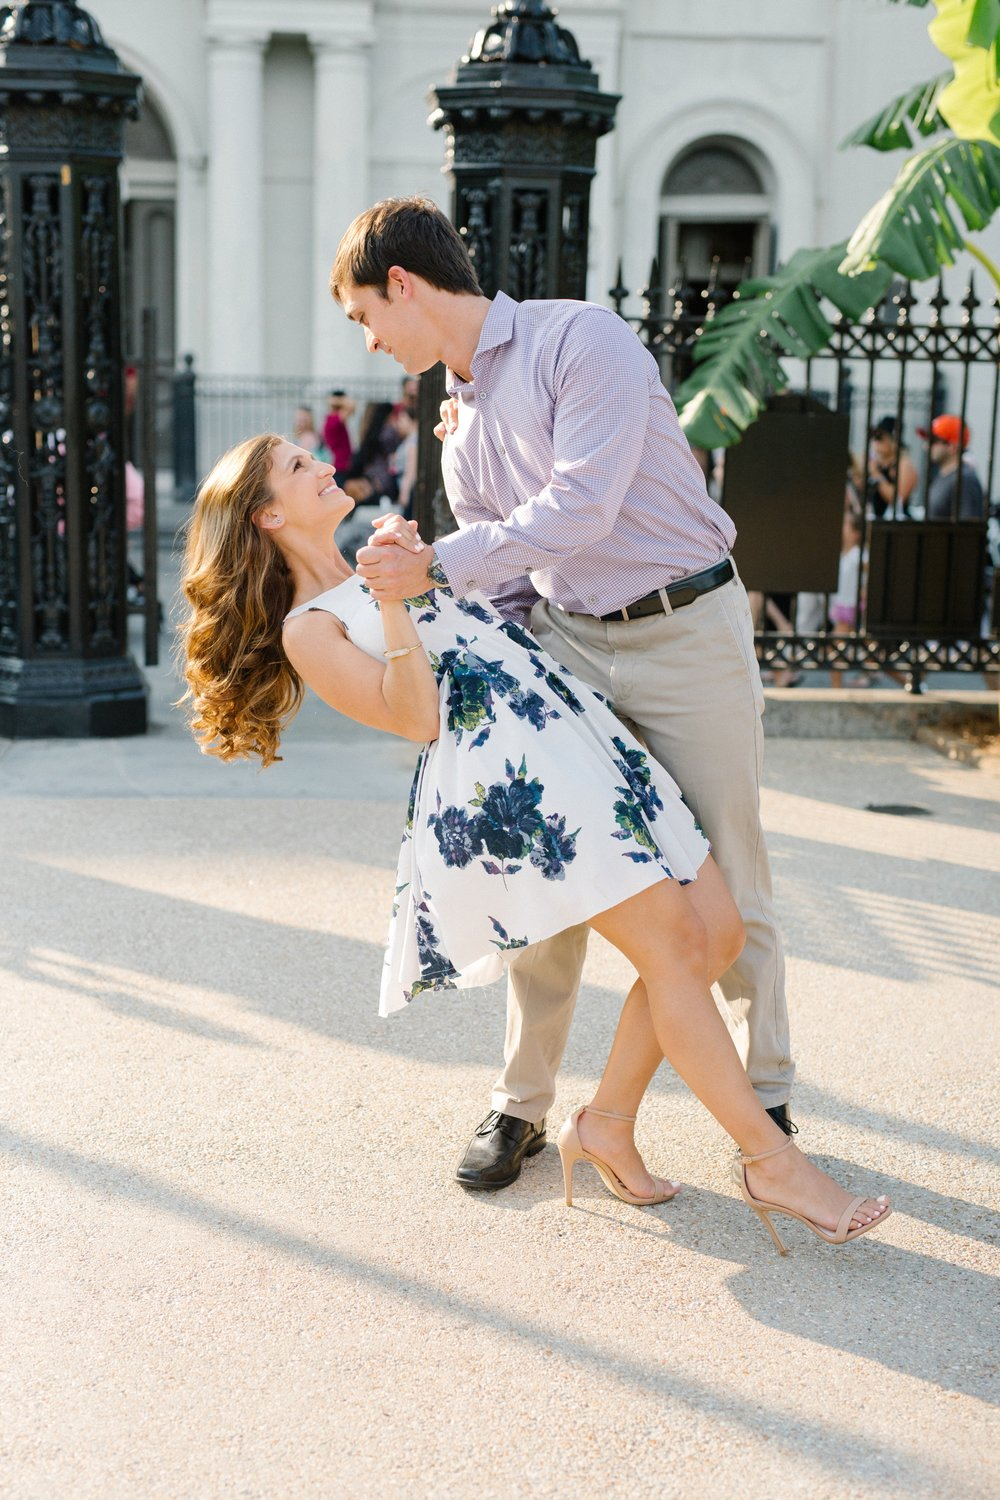 Gulfport_Wedding_Photographer_0947.jpg